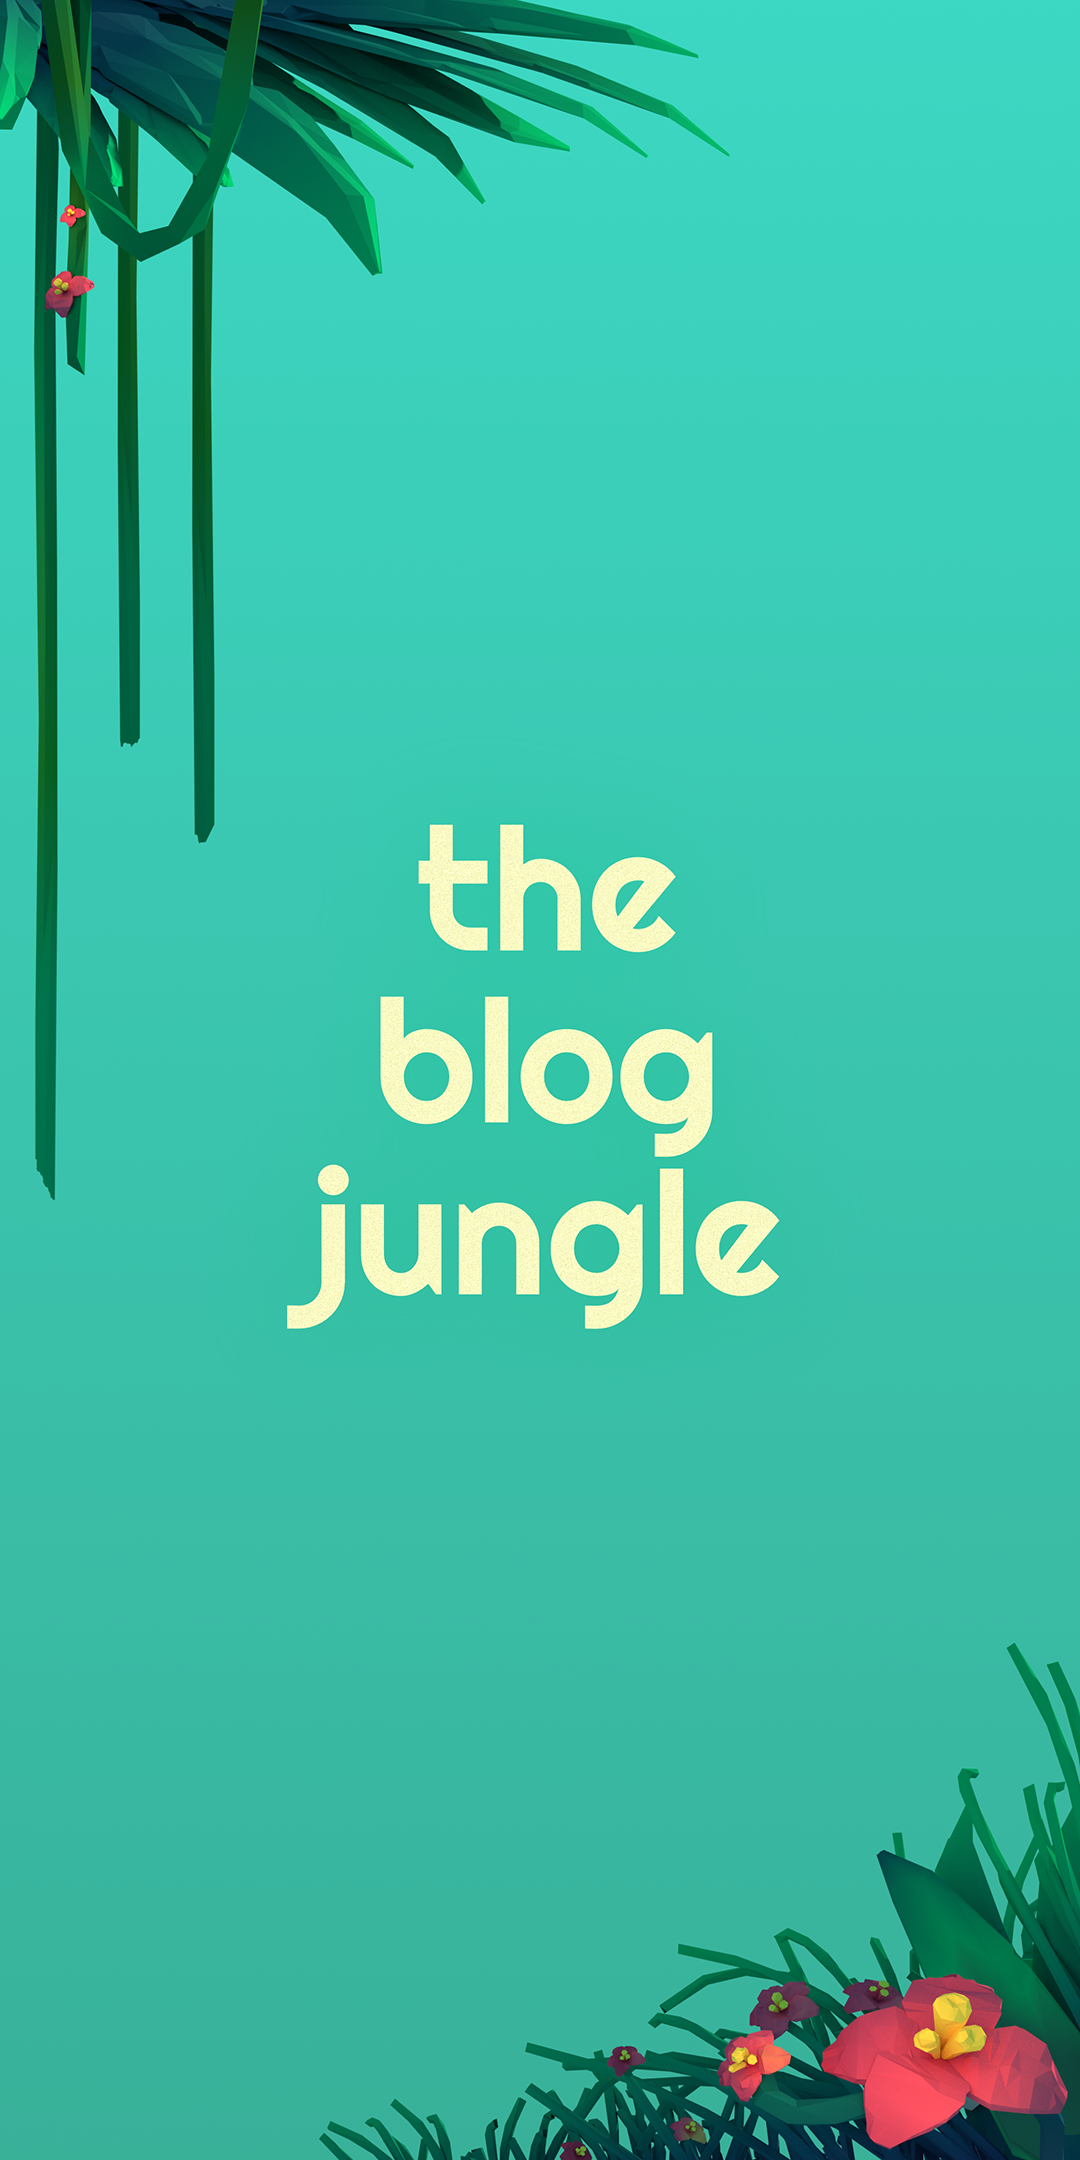 theblogjungle